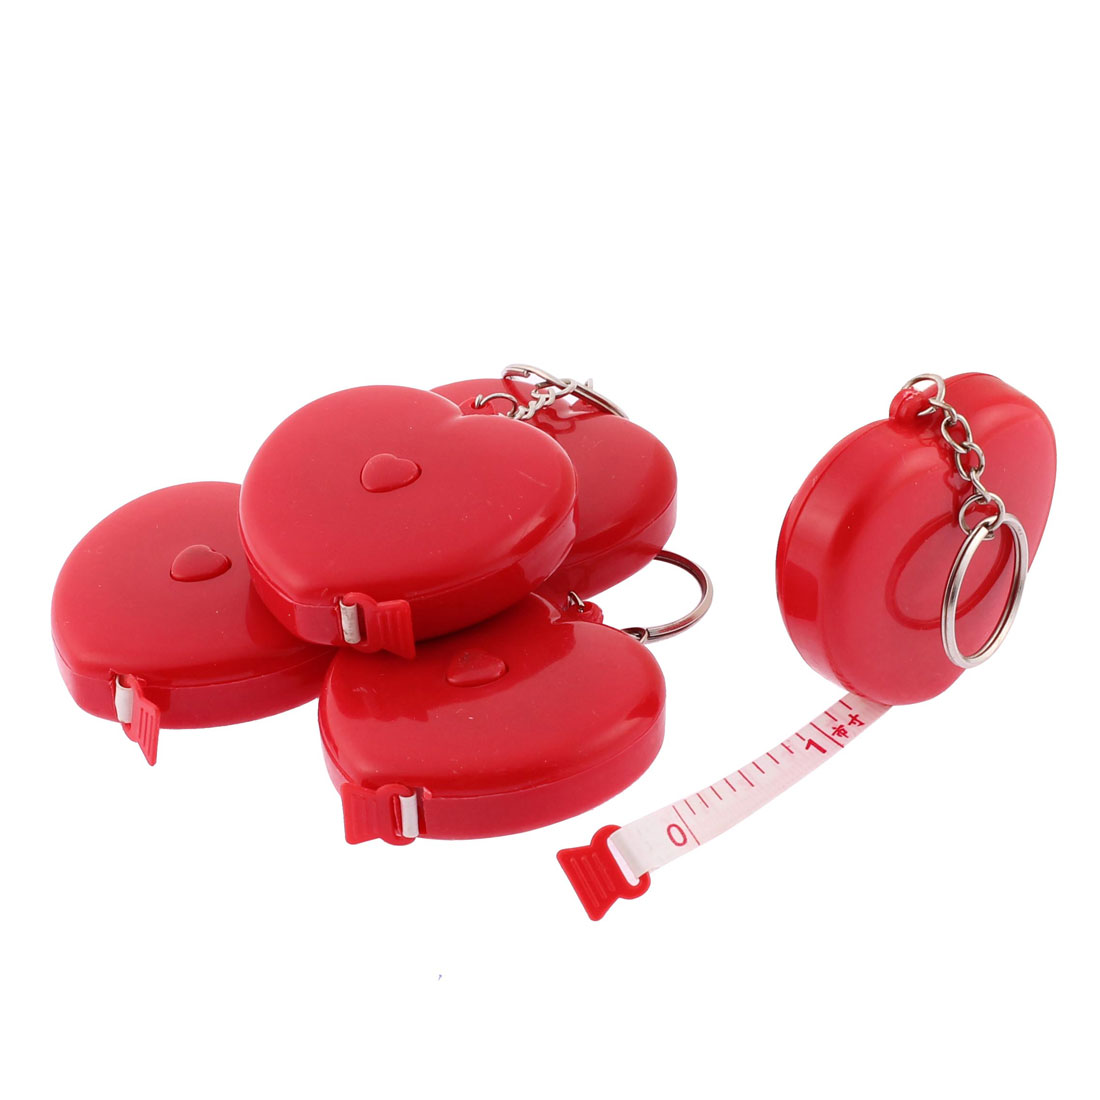 Dressmaker Plastic Shell Heart Style Retractable Measuring Tape Ruler Red 1.5 M 5pcs